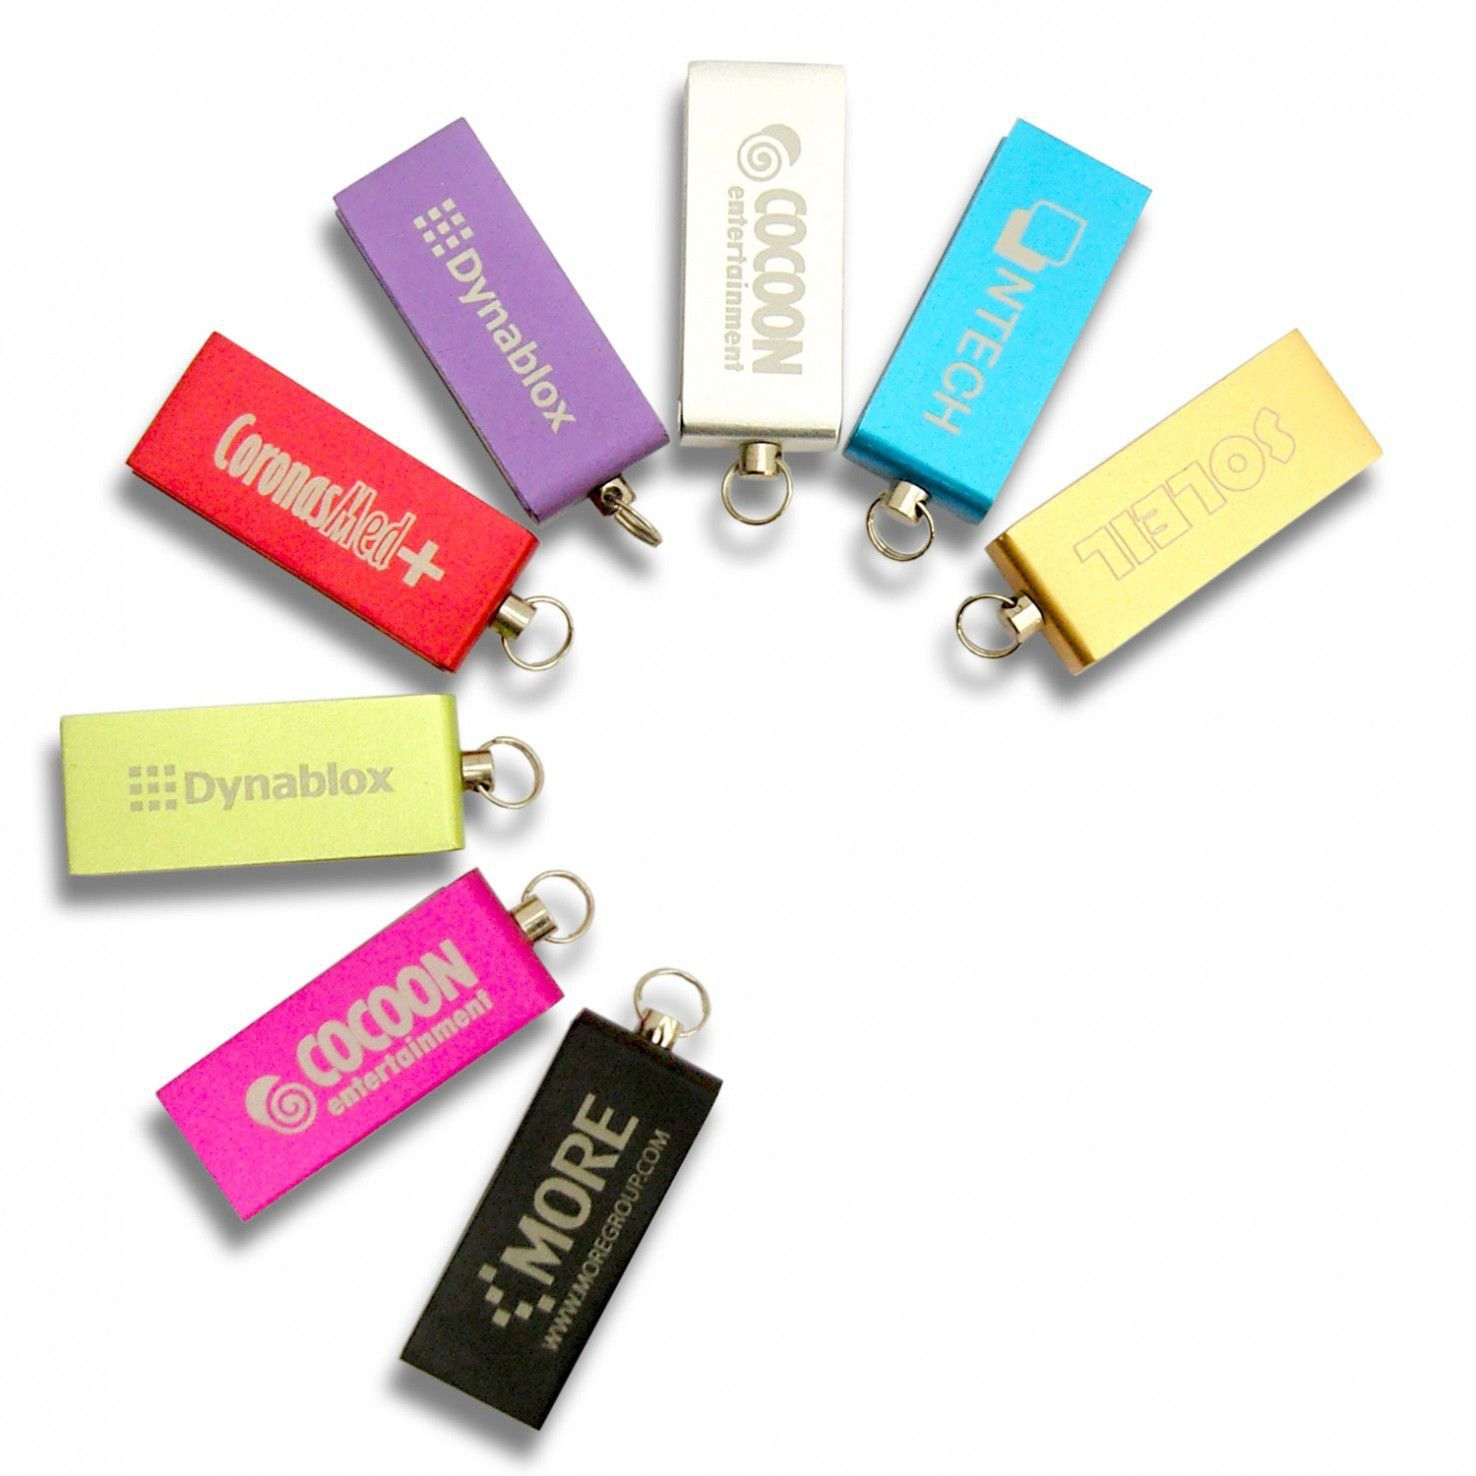 Micro USB stick 2GB